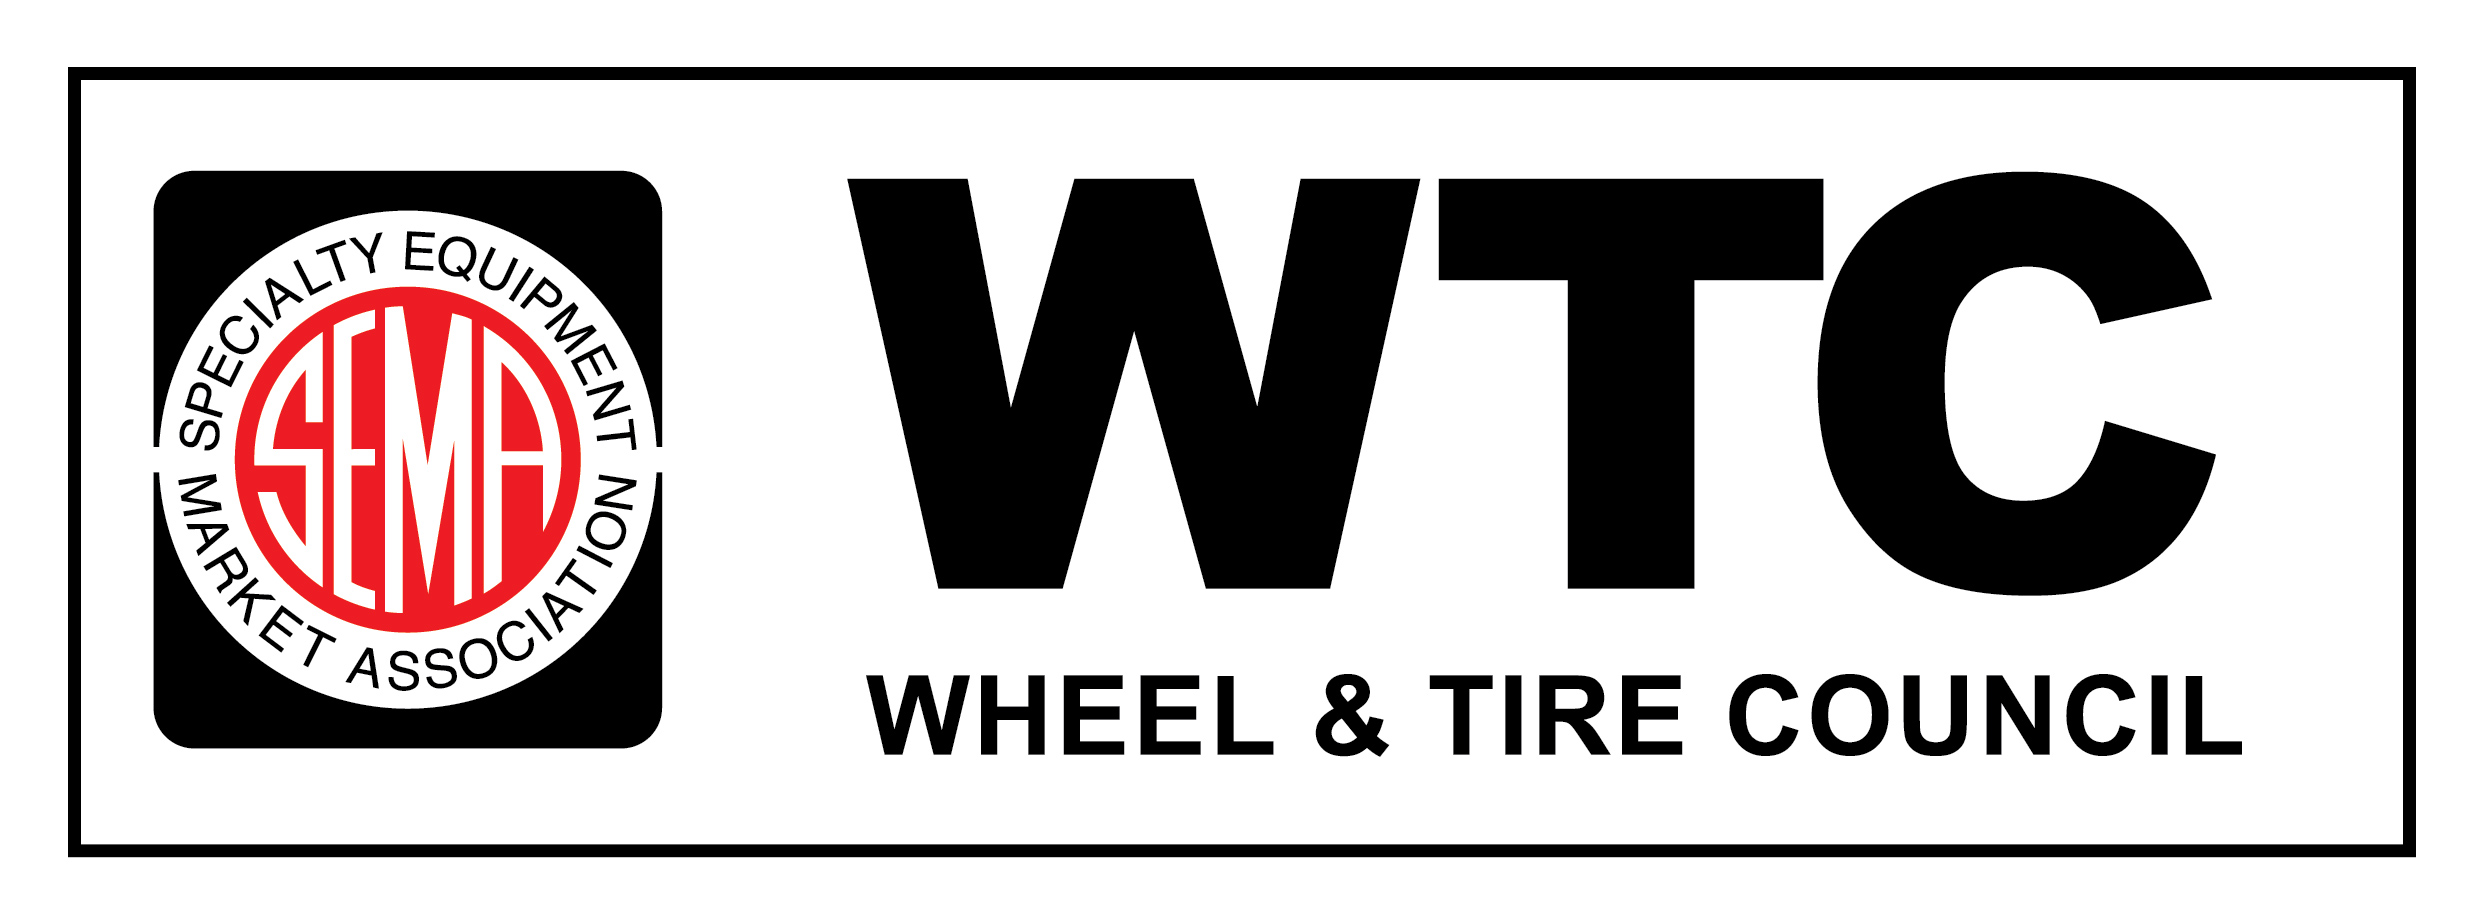 Wheel & TIre Council (WTC) - logo